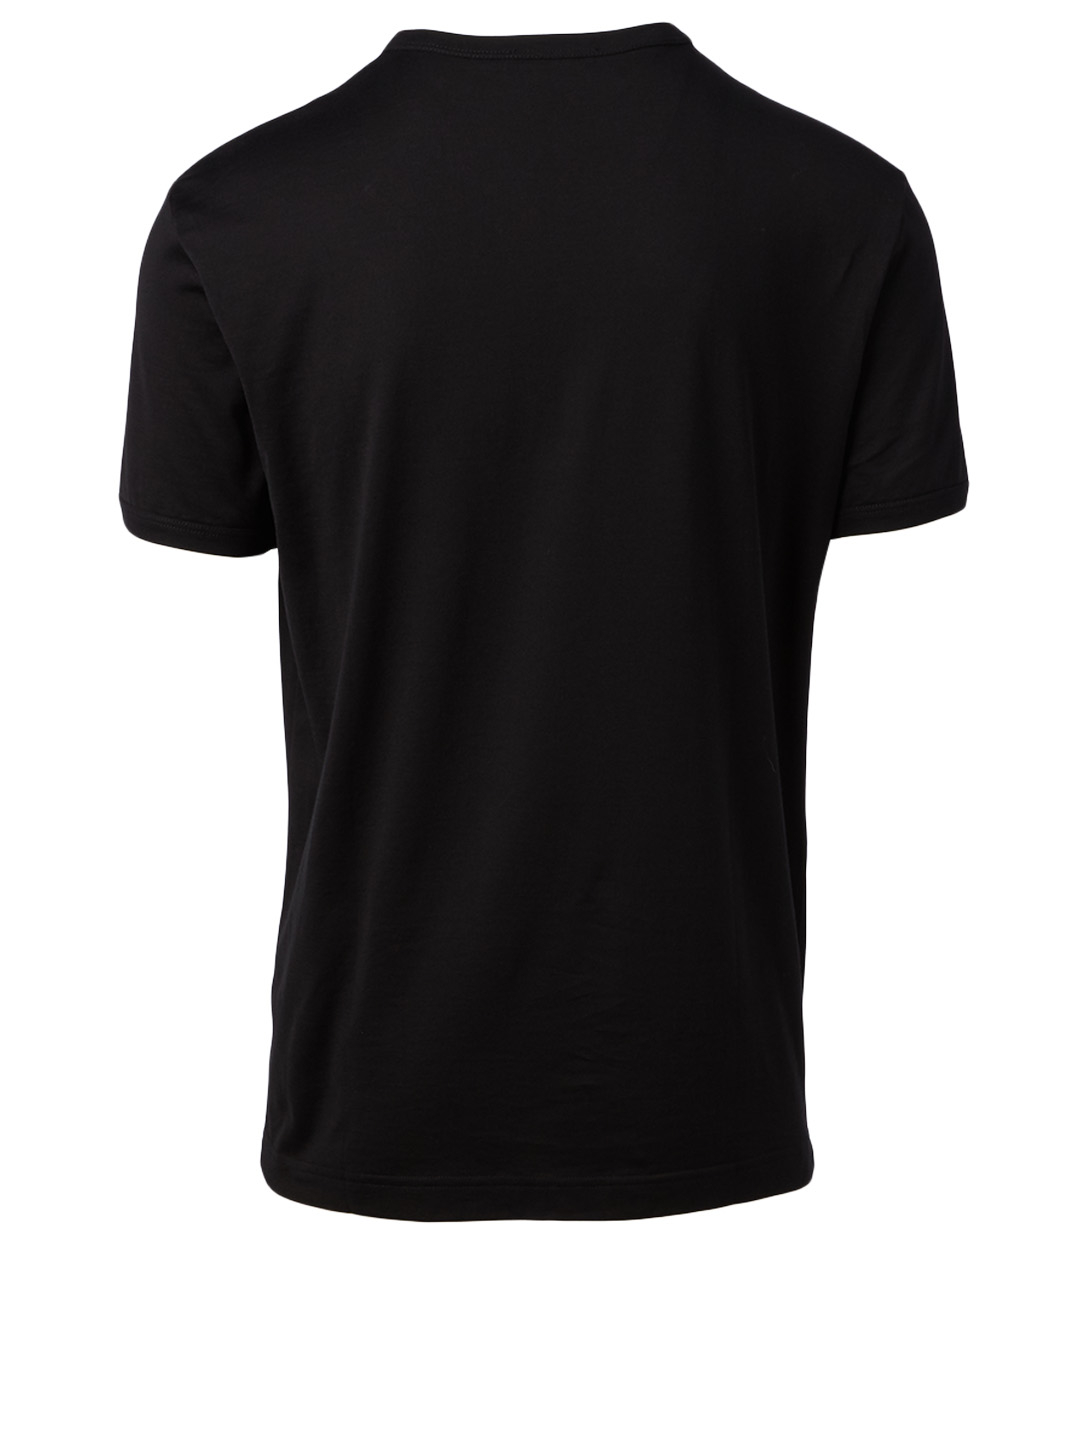 DOLCE & GABBANA Cotton Logo T-Shirt Men's Black